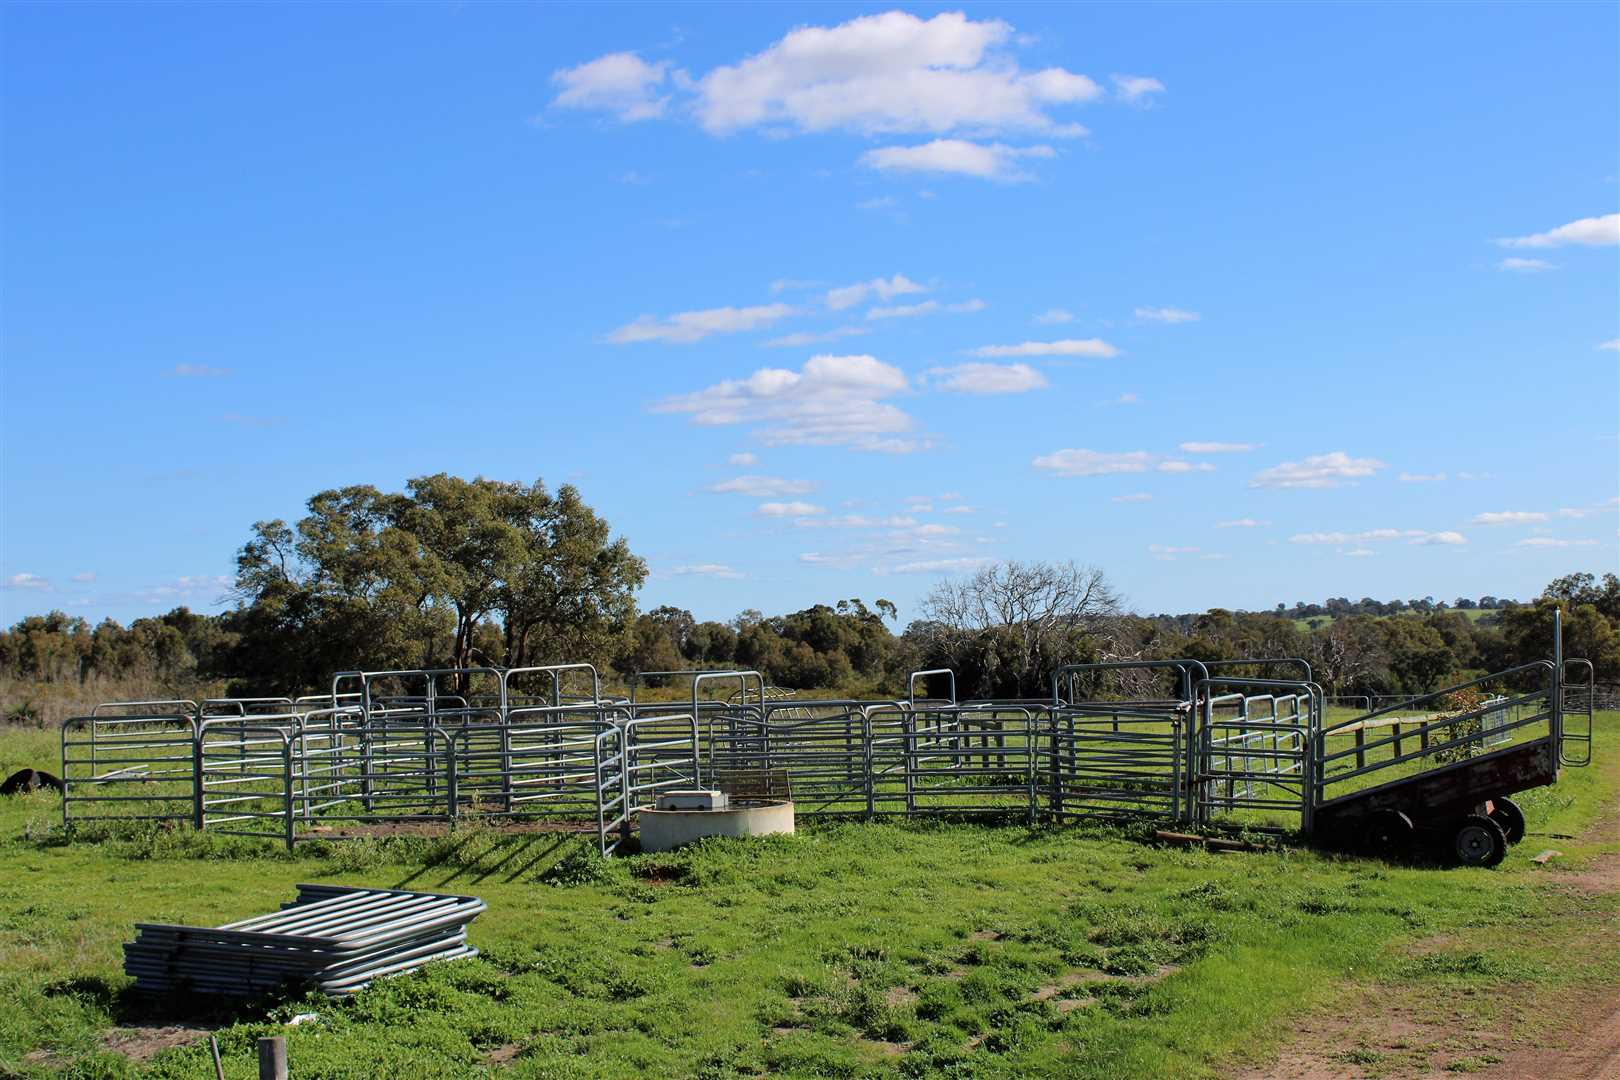 Cattle yards, under construction and in use